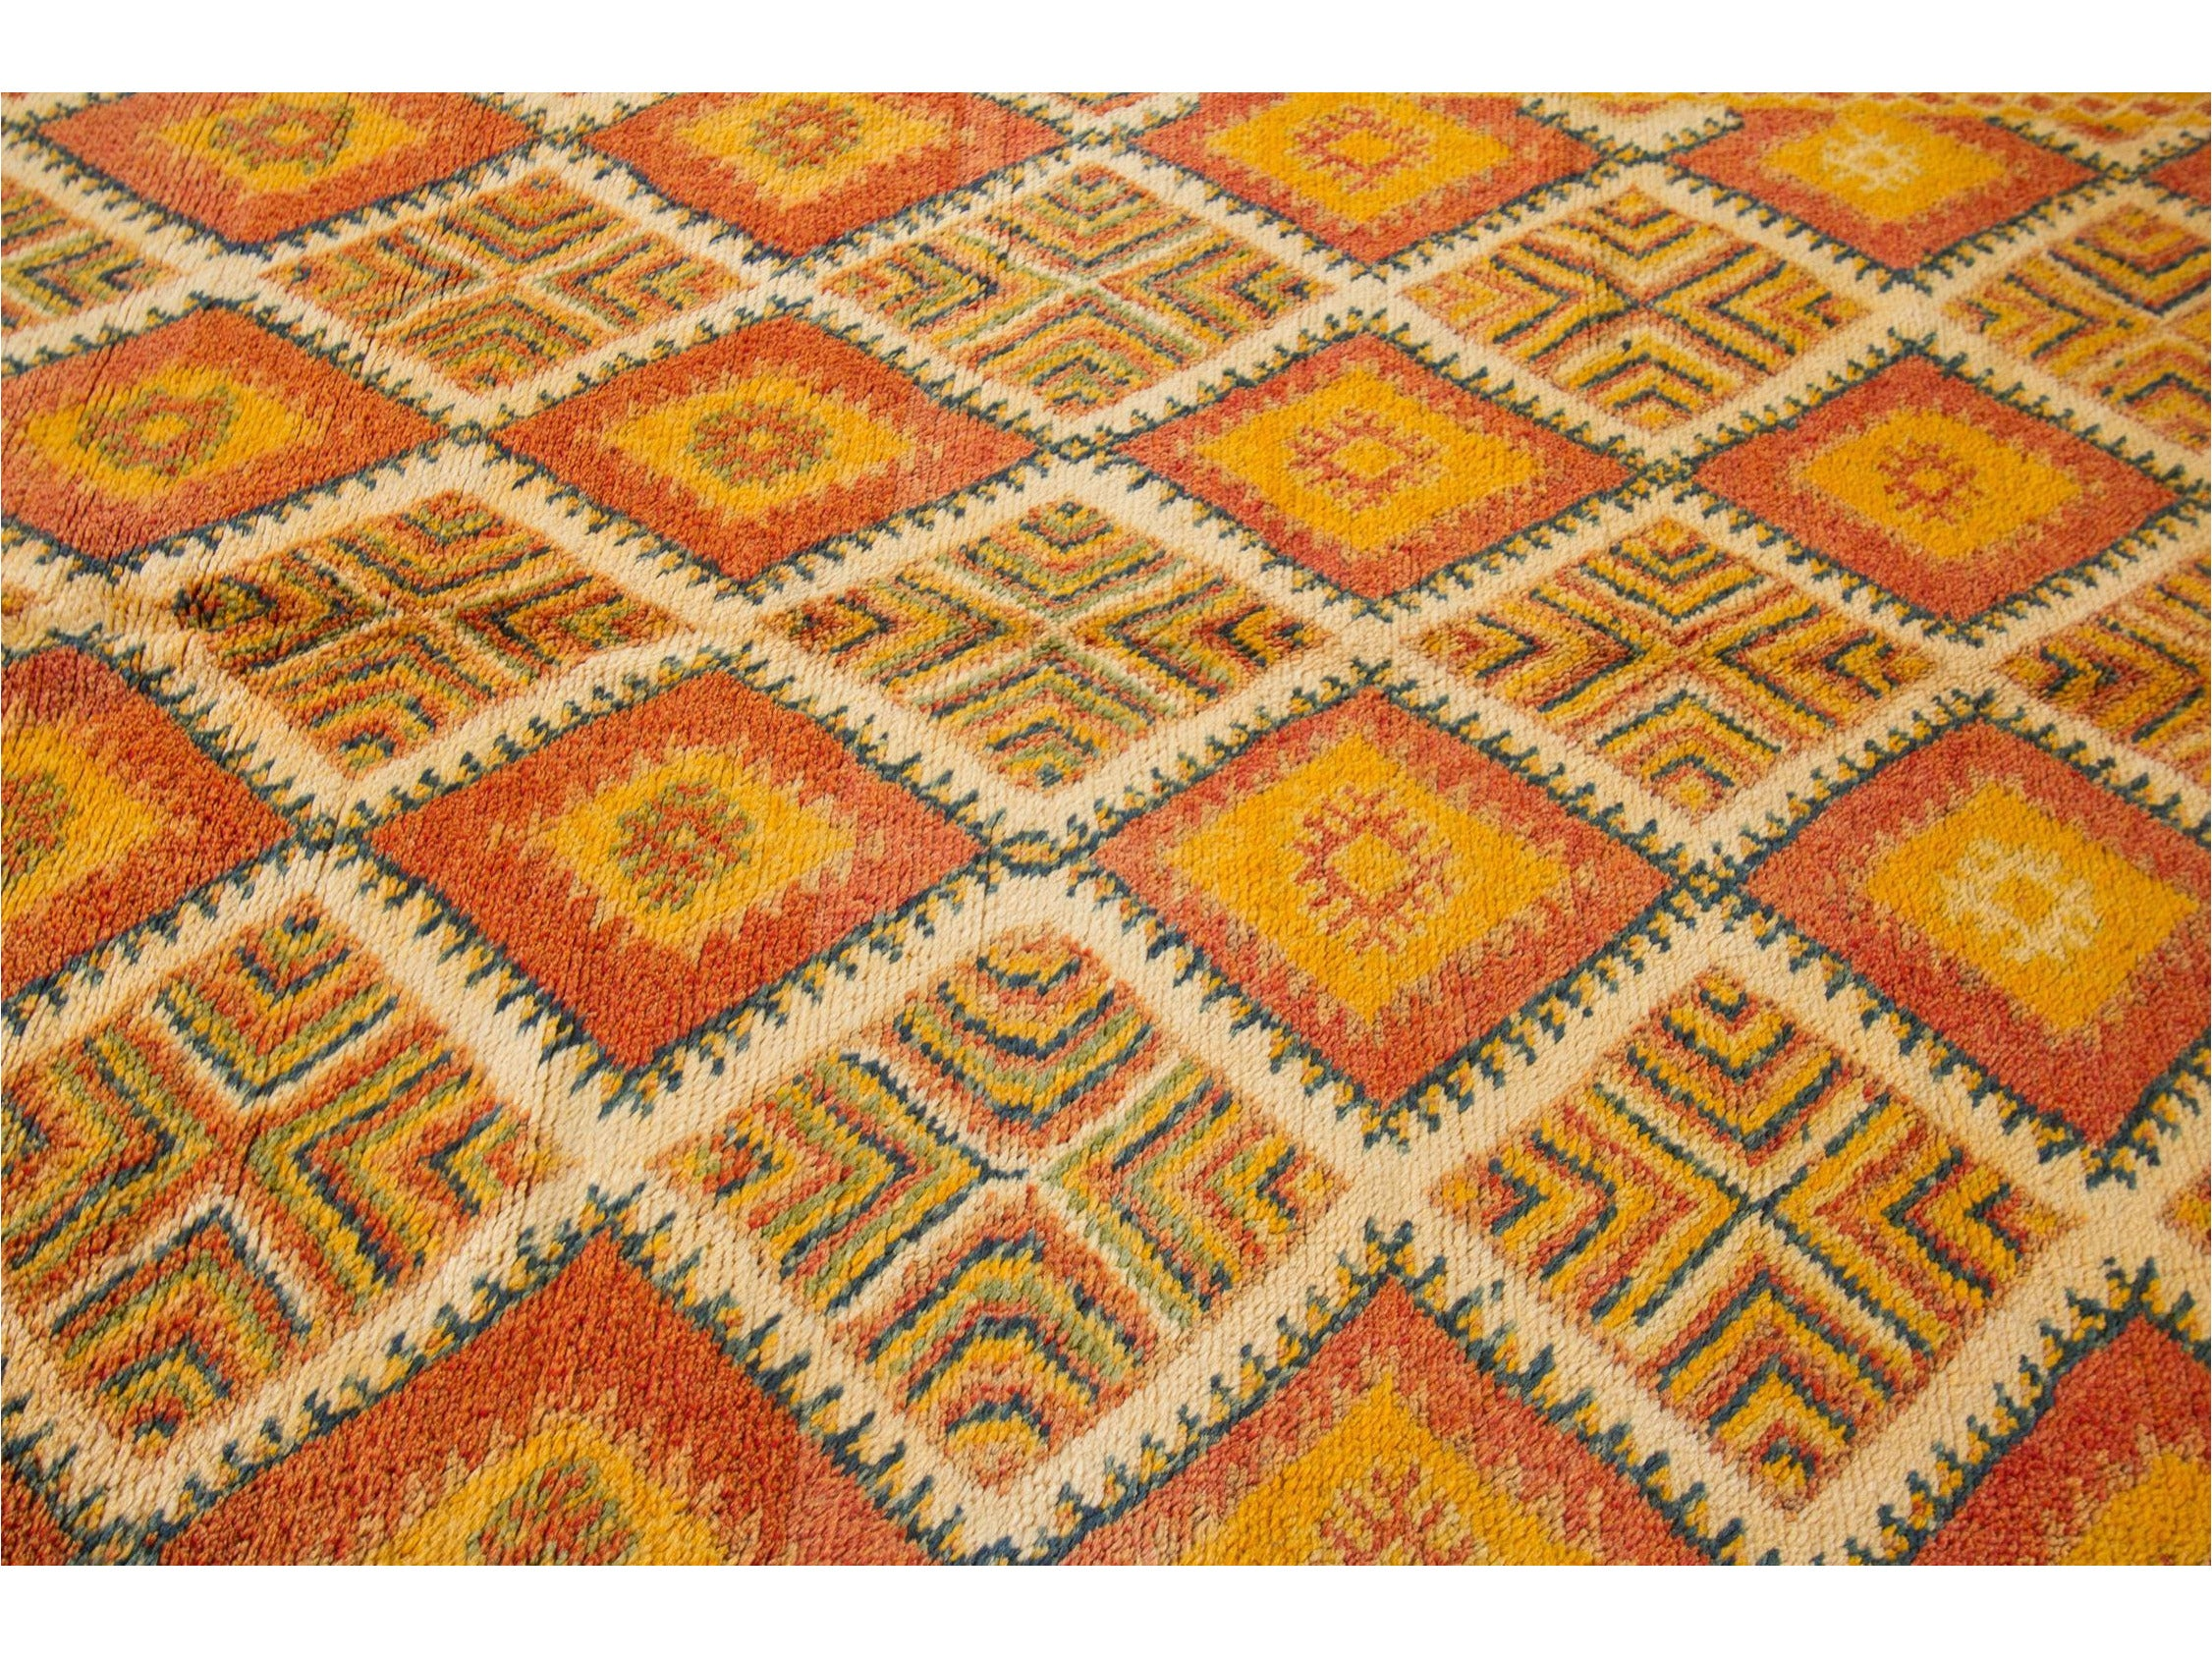 Mid-20th Century Vintage Orange Moroccan Tribal Wool Rug 5 X 12